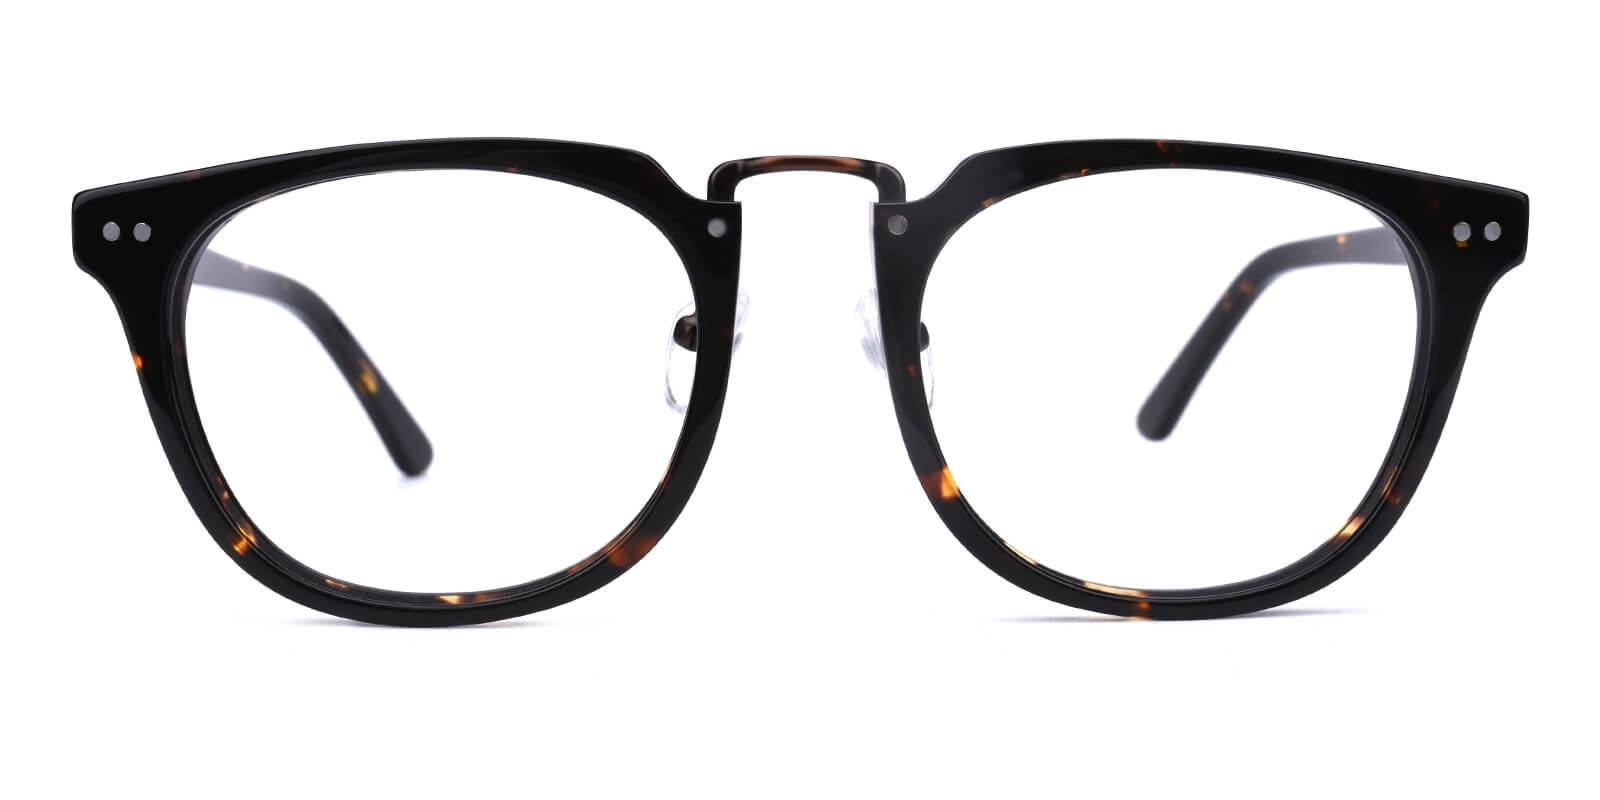 Crave-Tortoise-Square-Acetate-Eyeglasses-additional2